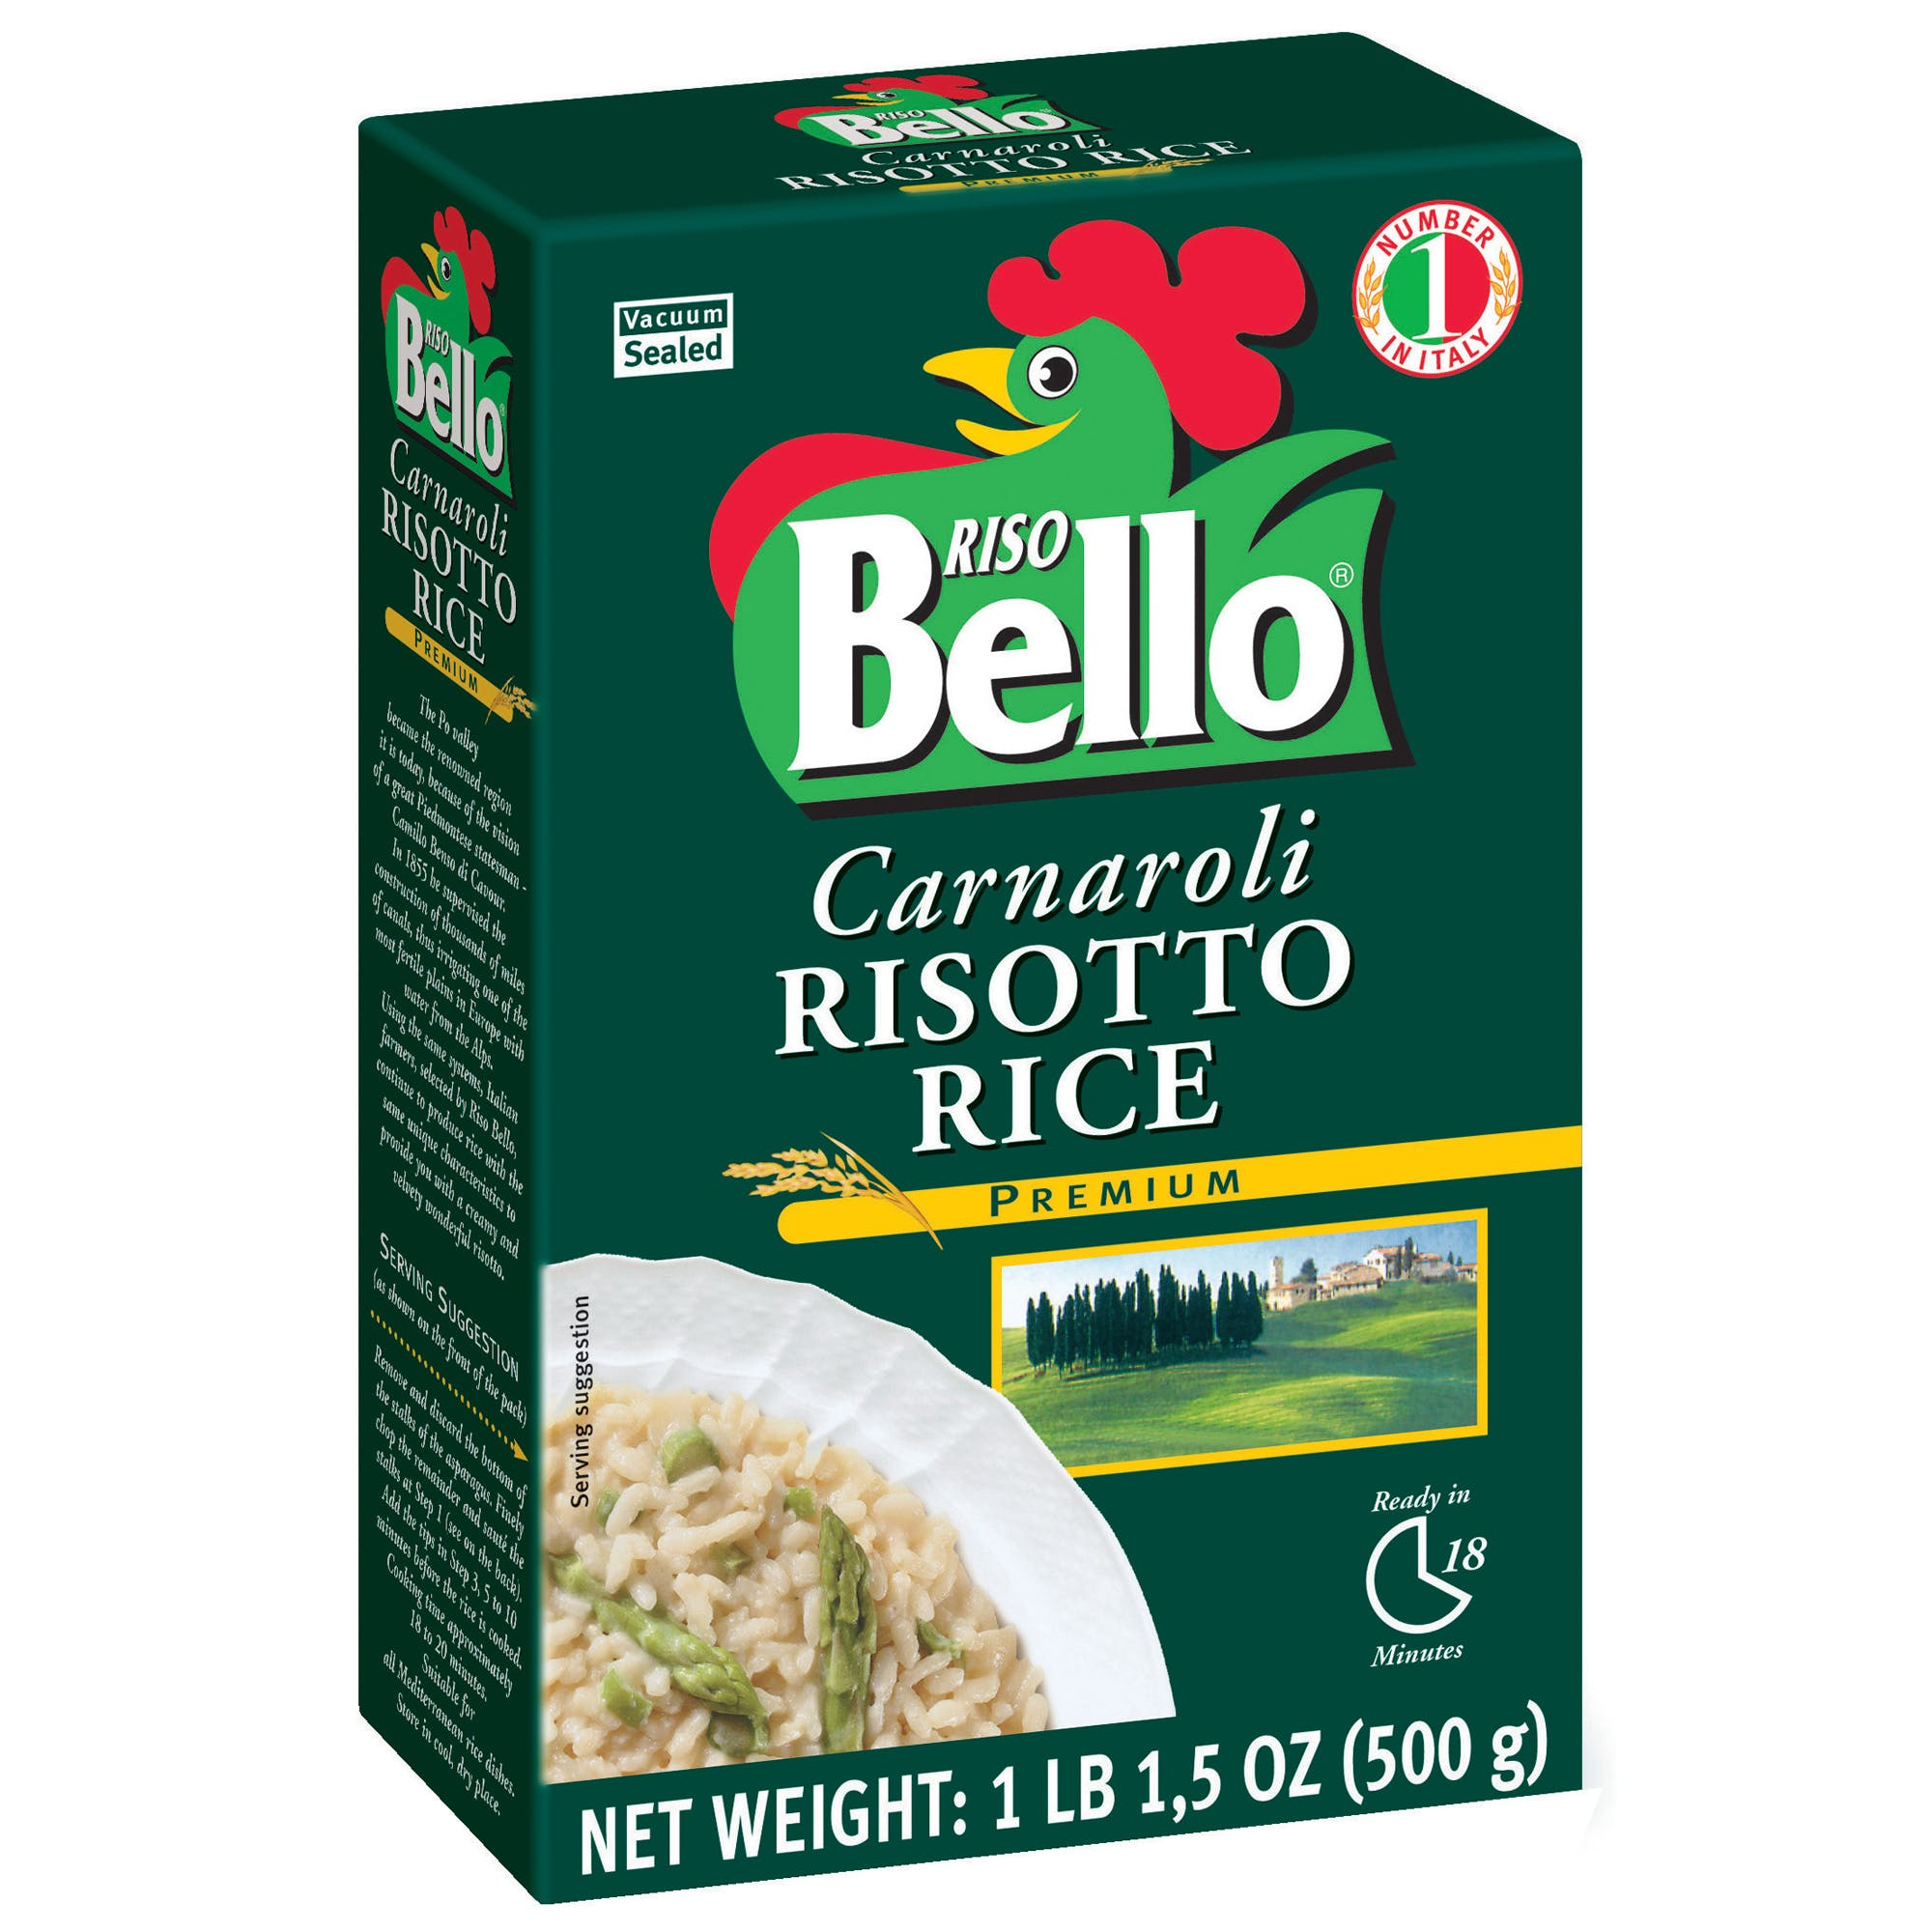 Carnaroli Risotto Rice Rice sold by M5 Corporation